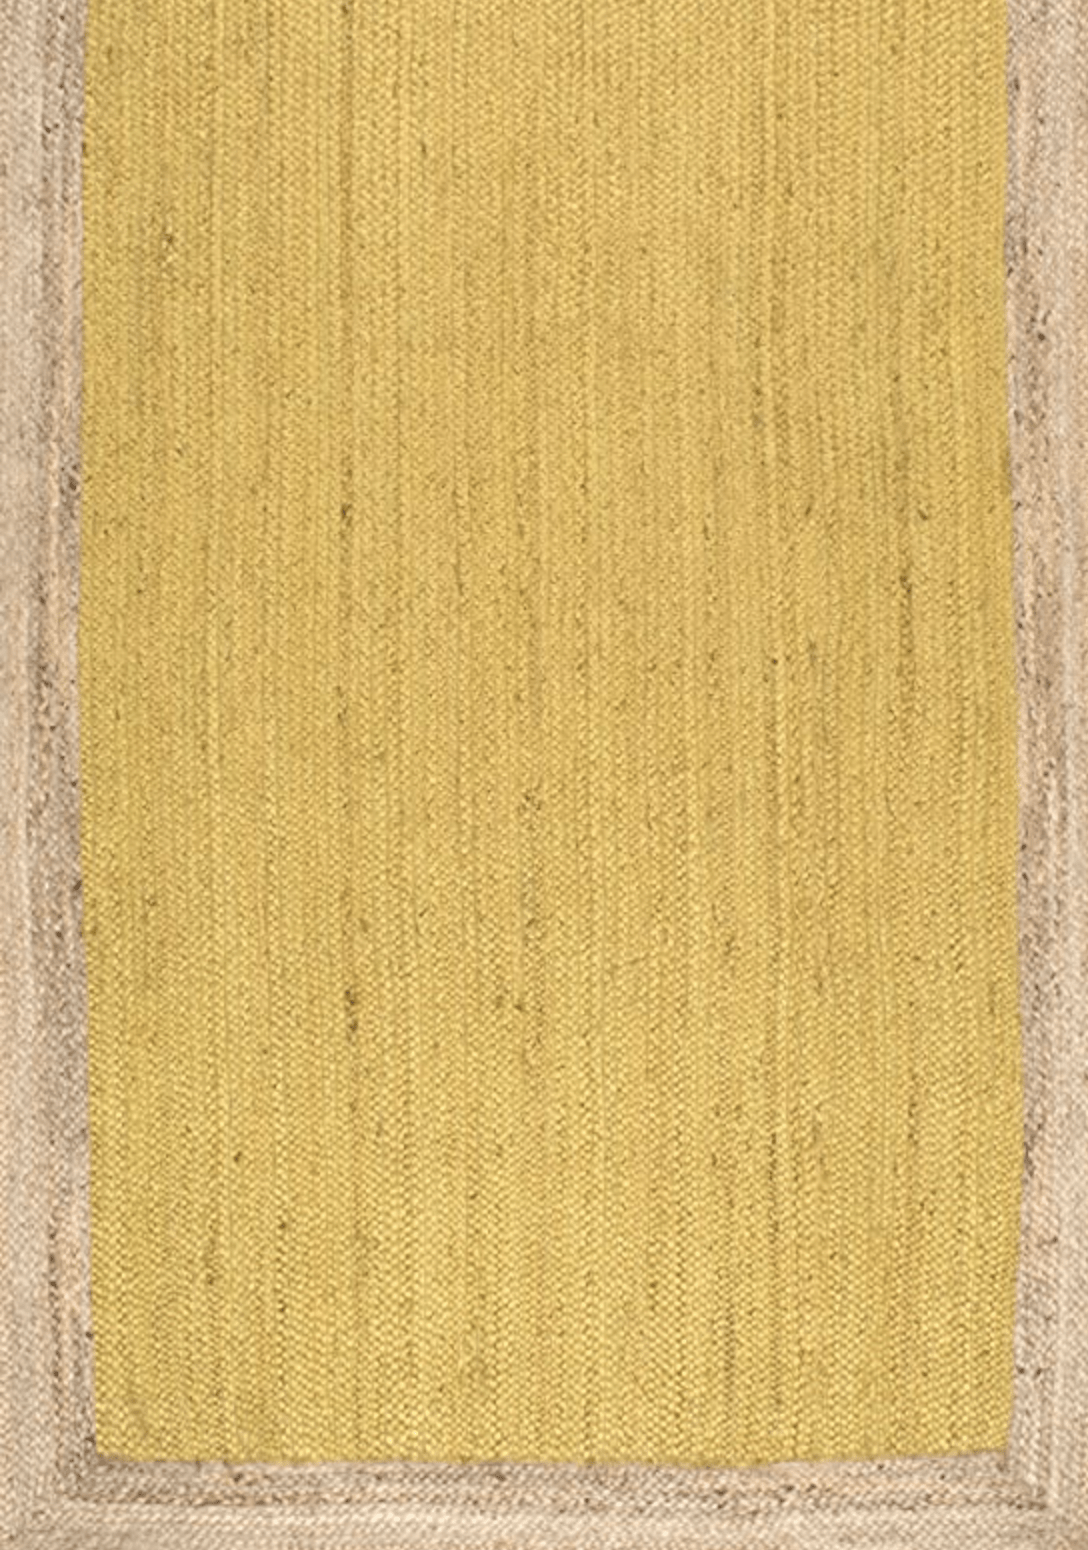 Eleonora Hand Woven Jute Accent Rug from nuLOOM